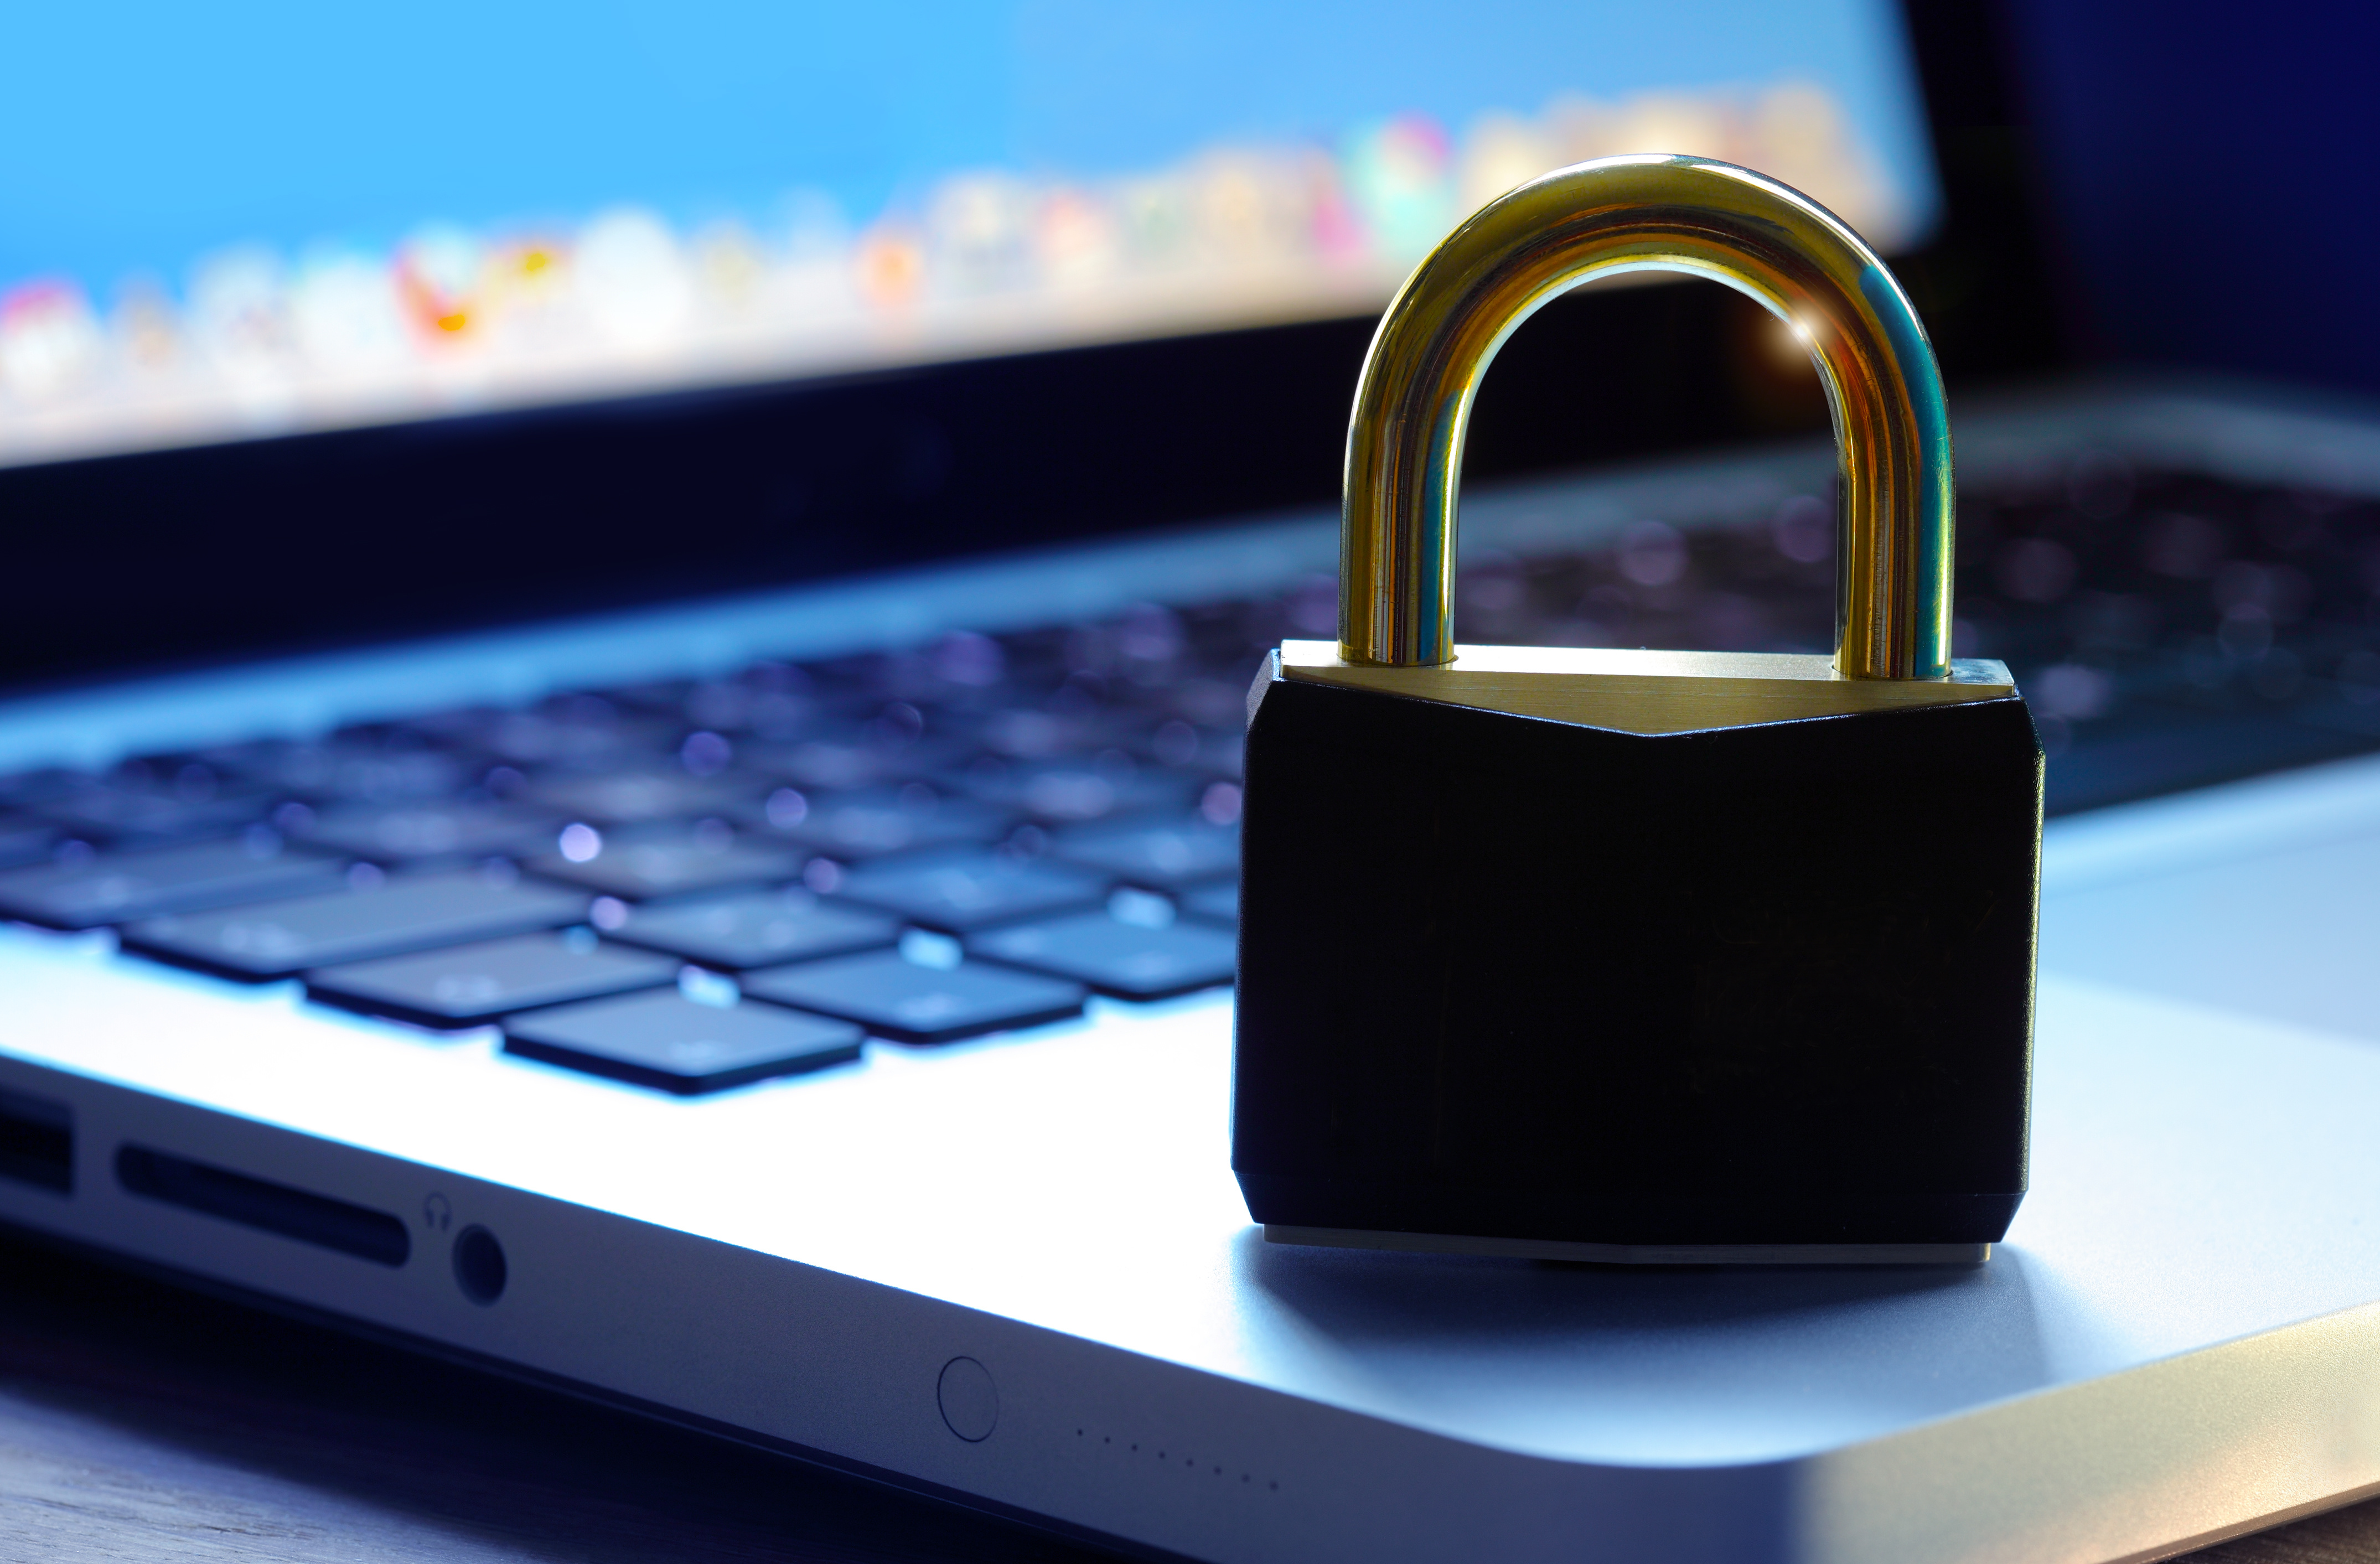 Nearly three in four employees are willing to share sensitive, confidential or regulated company information, highlighting a problem with data security